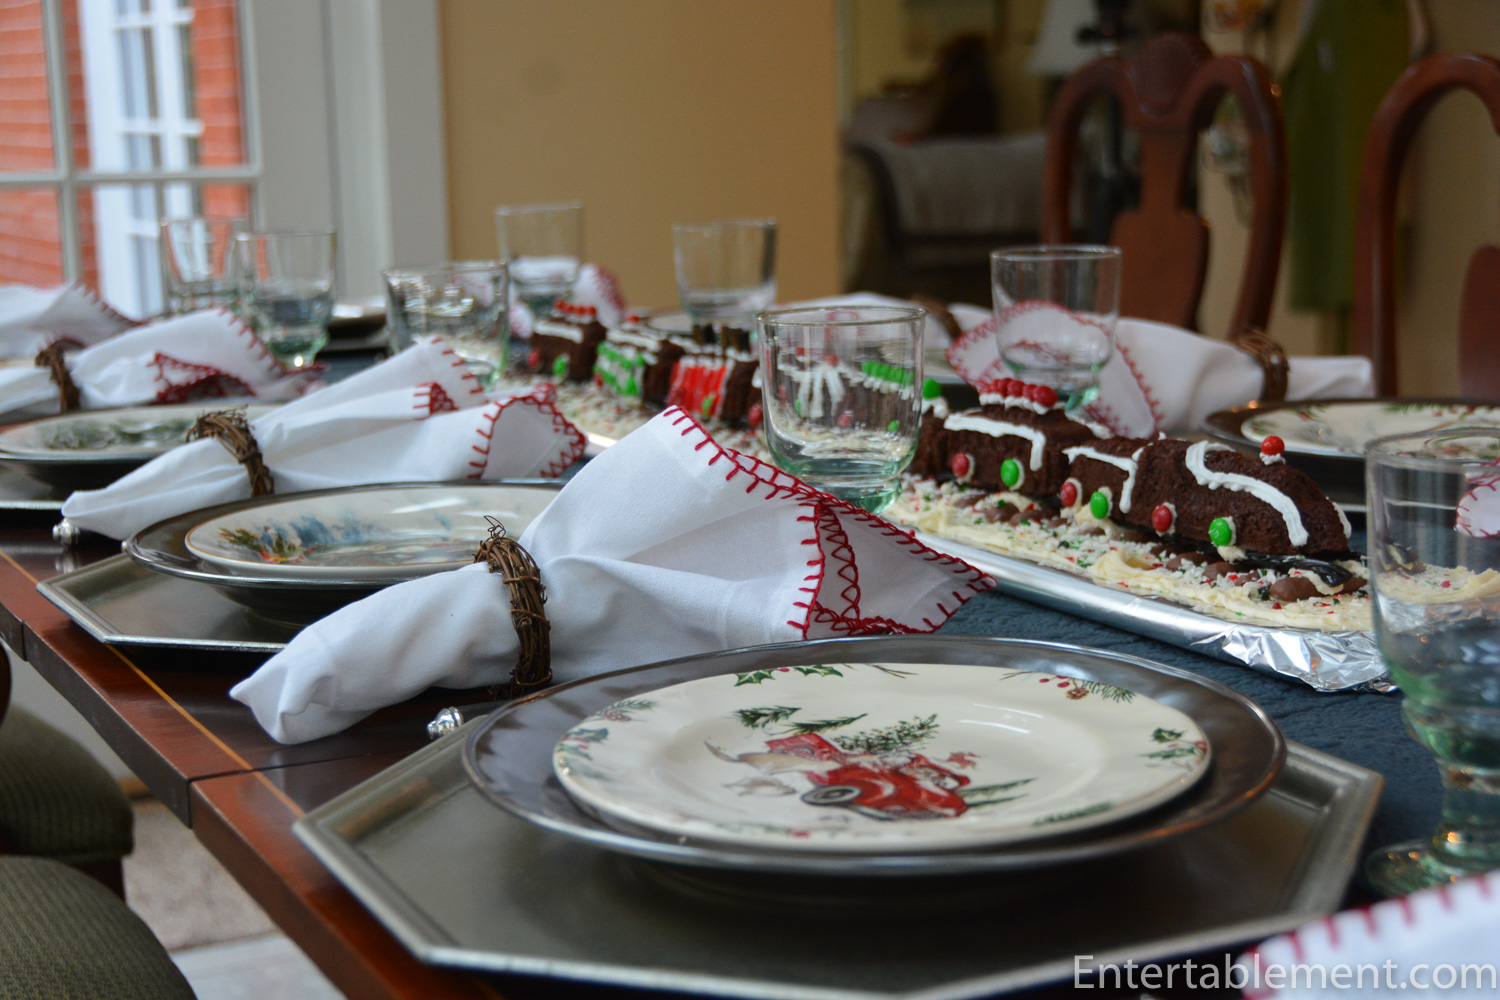 Trains Trees And Family Meals Entertablement